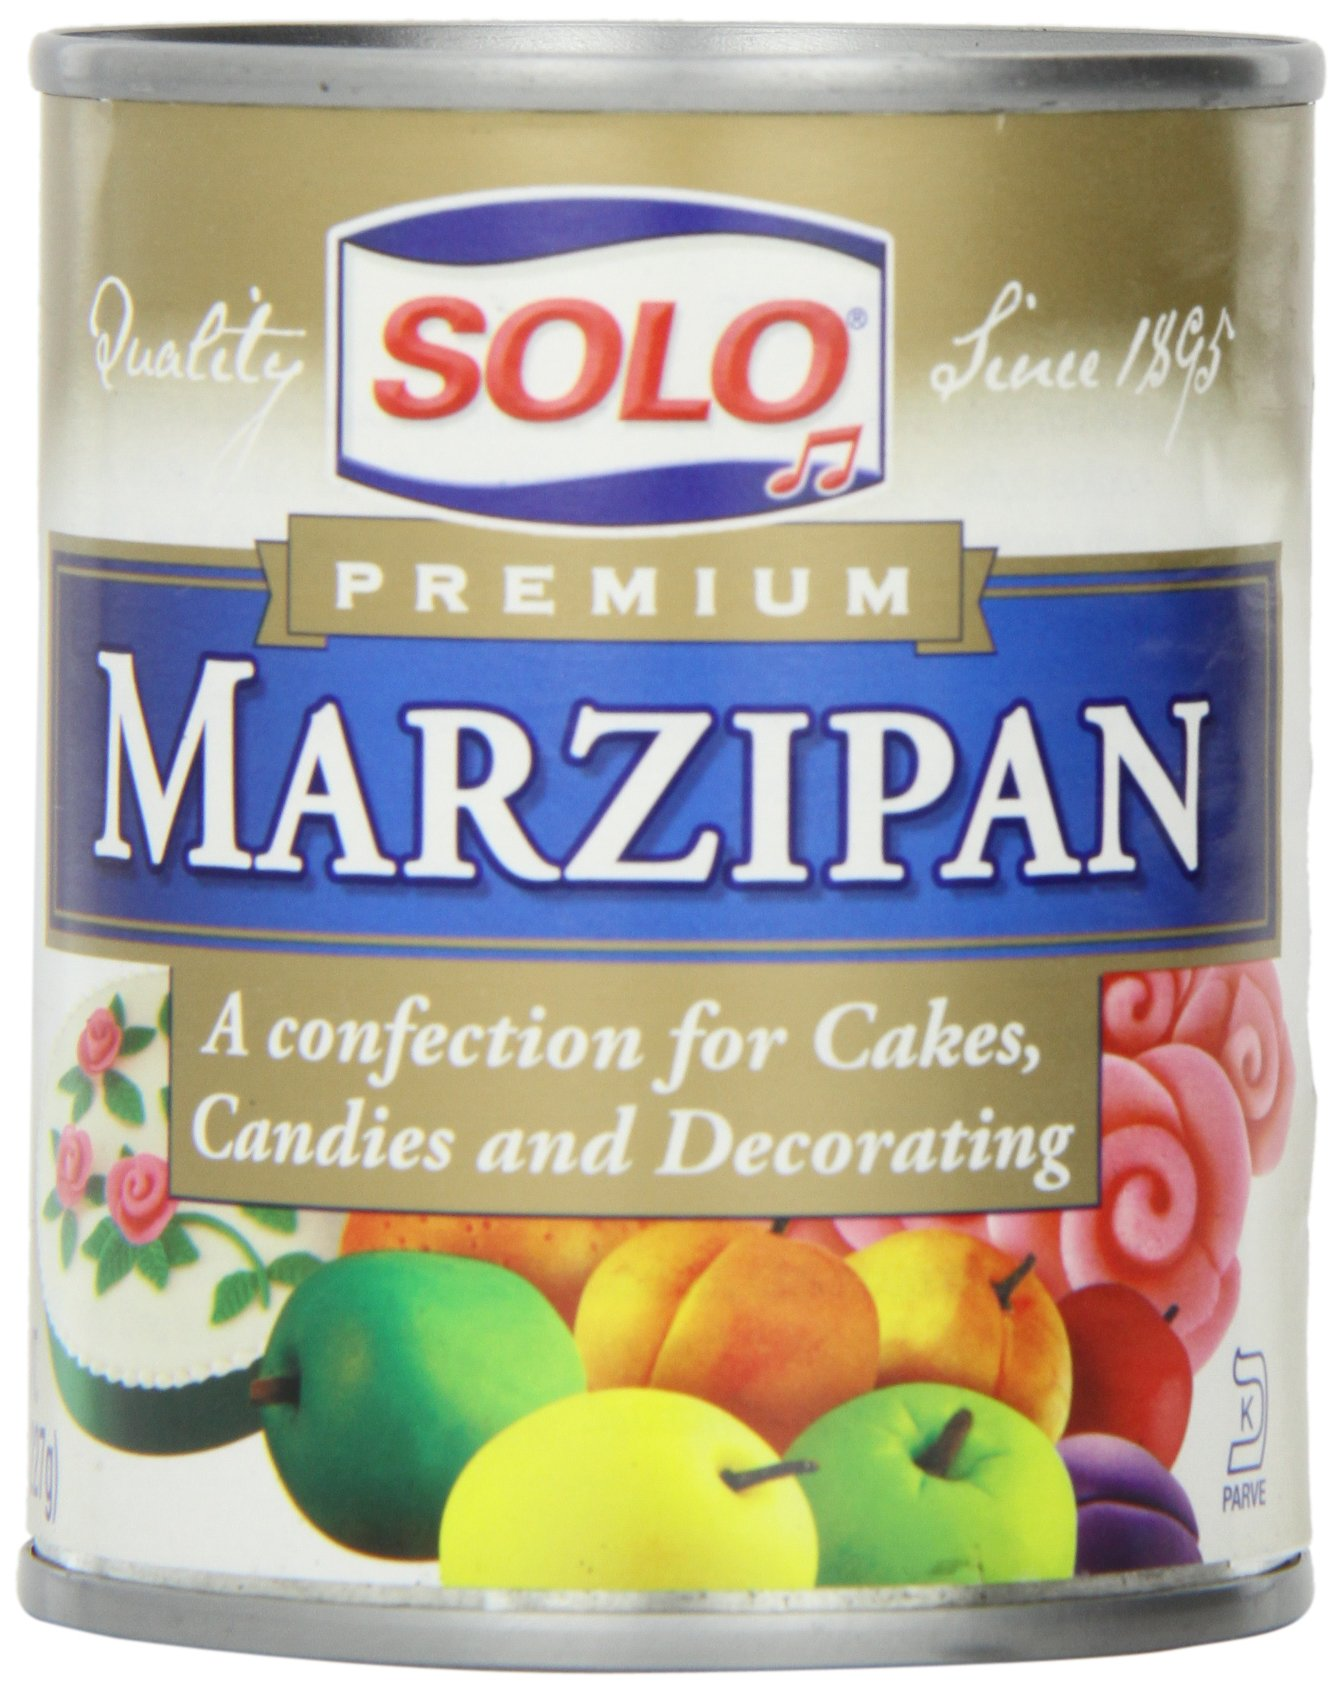 Solo Marzipan, 8-Ounce Unit (Pack of 6)